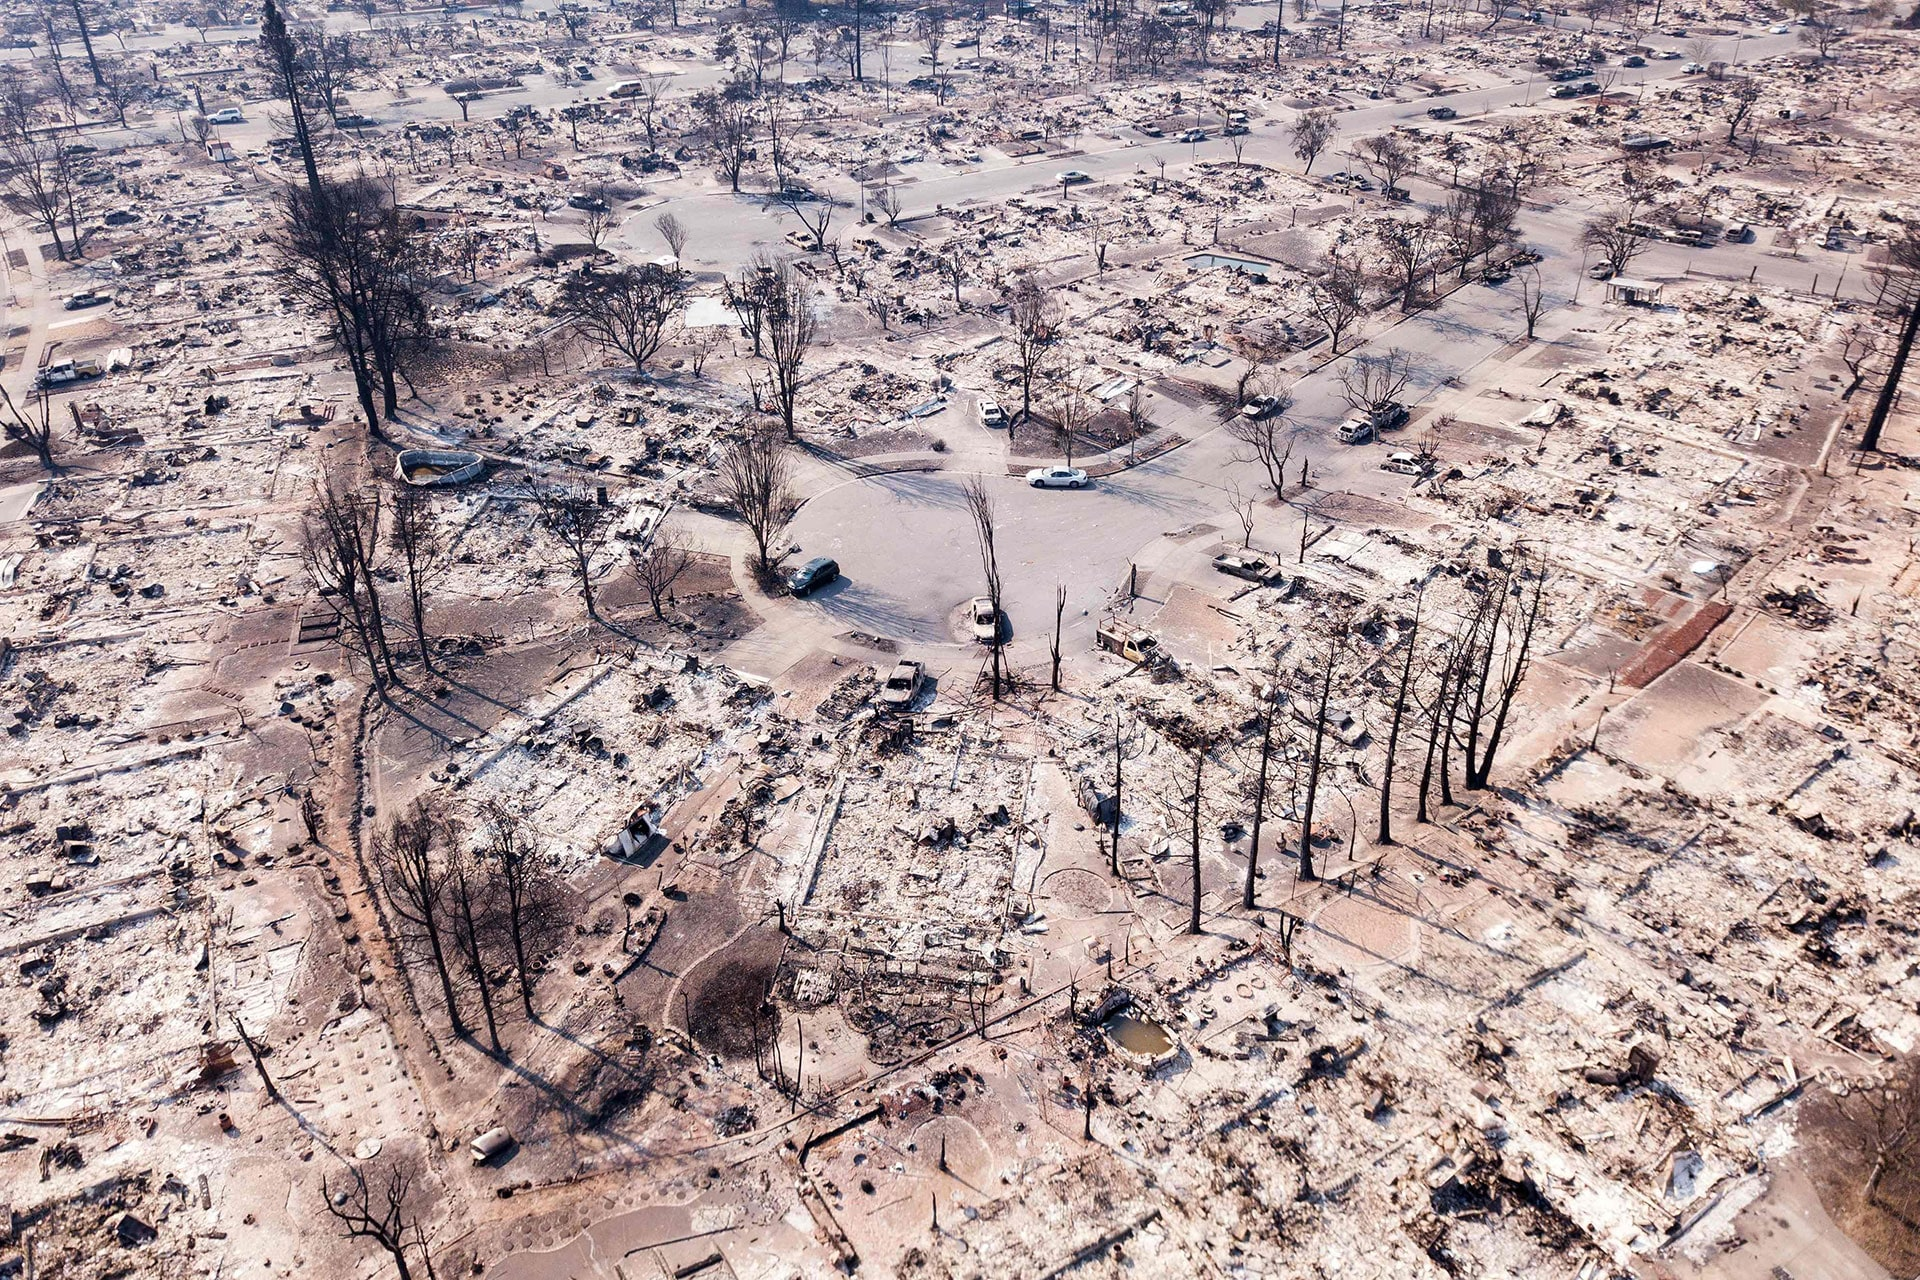 The Coffey Park neighborhood was destroyed as wildfires swept through Santa Rosa, California